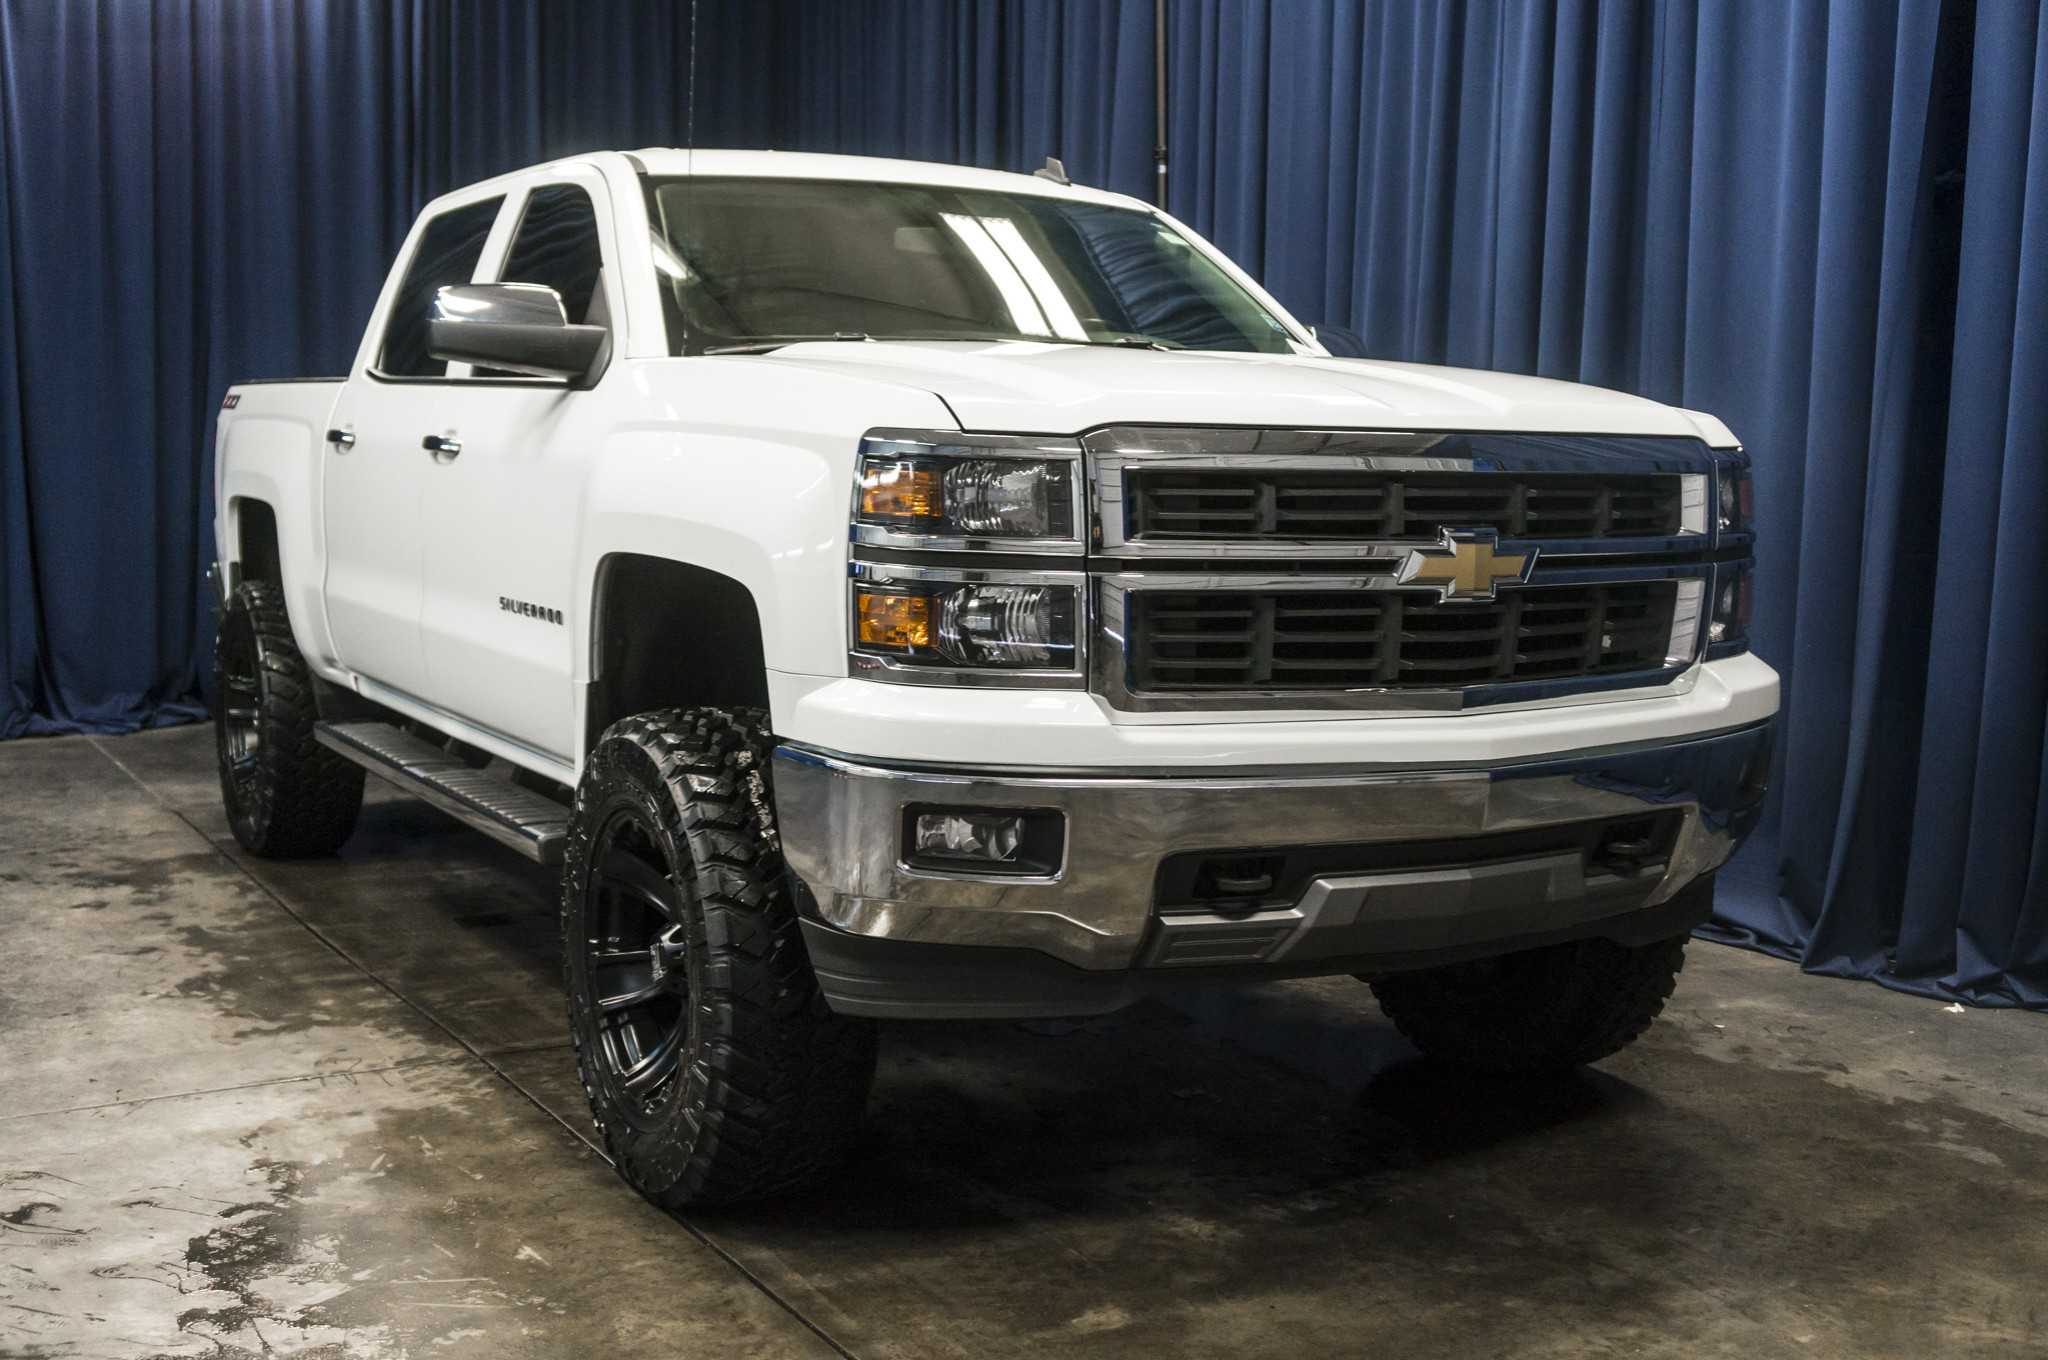 used lifted 2014 chevrolet silverado 1500 ltz 4x4 truck for sale 40334. Black Bedroom Furniture Sets. Home Design Ideas